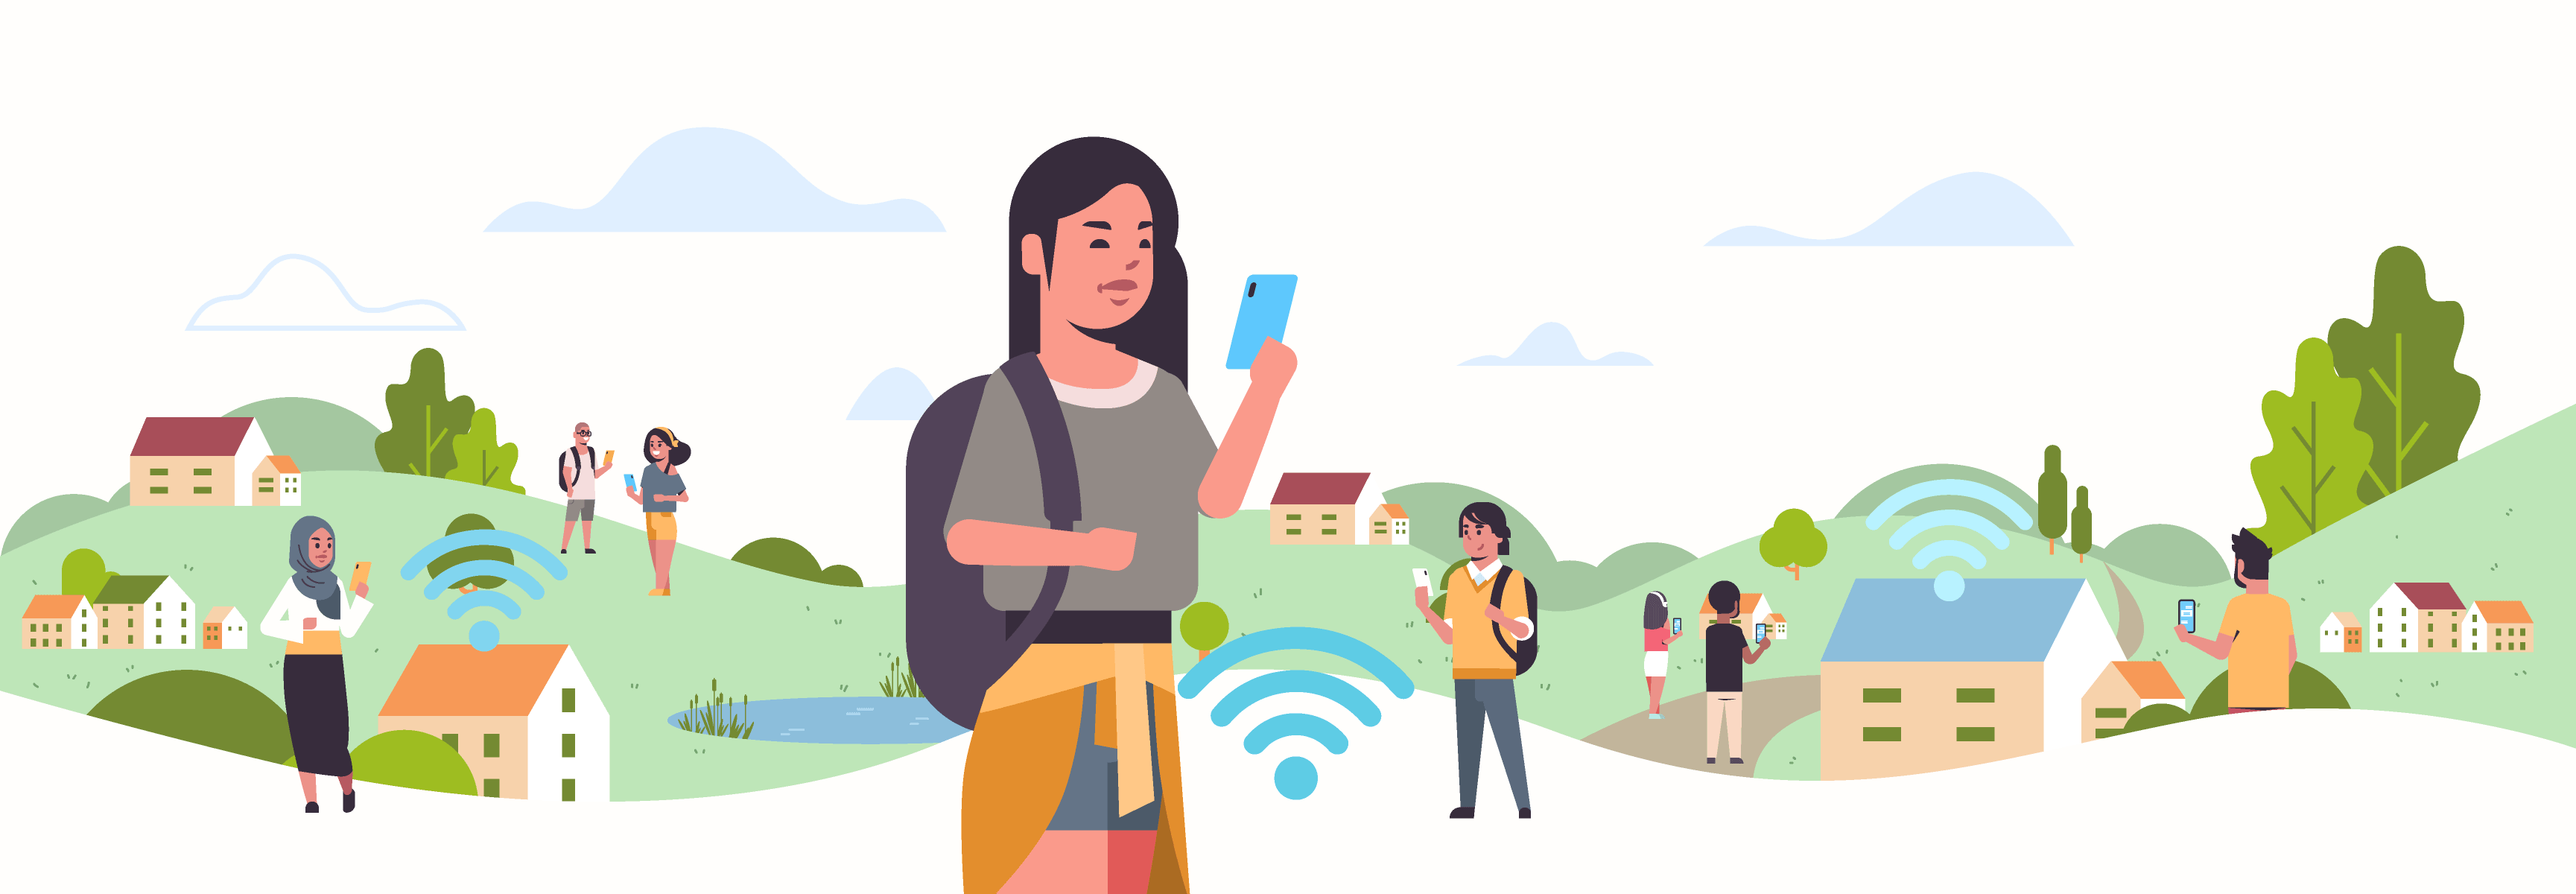 line art of people in a park with wi-fi